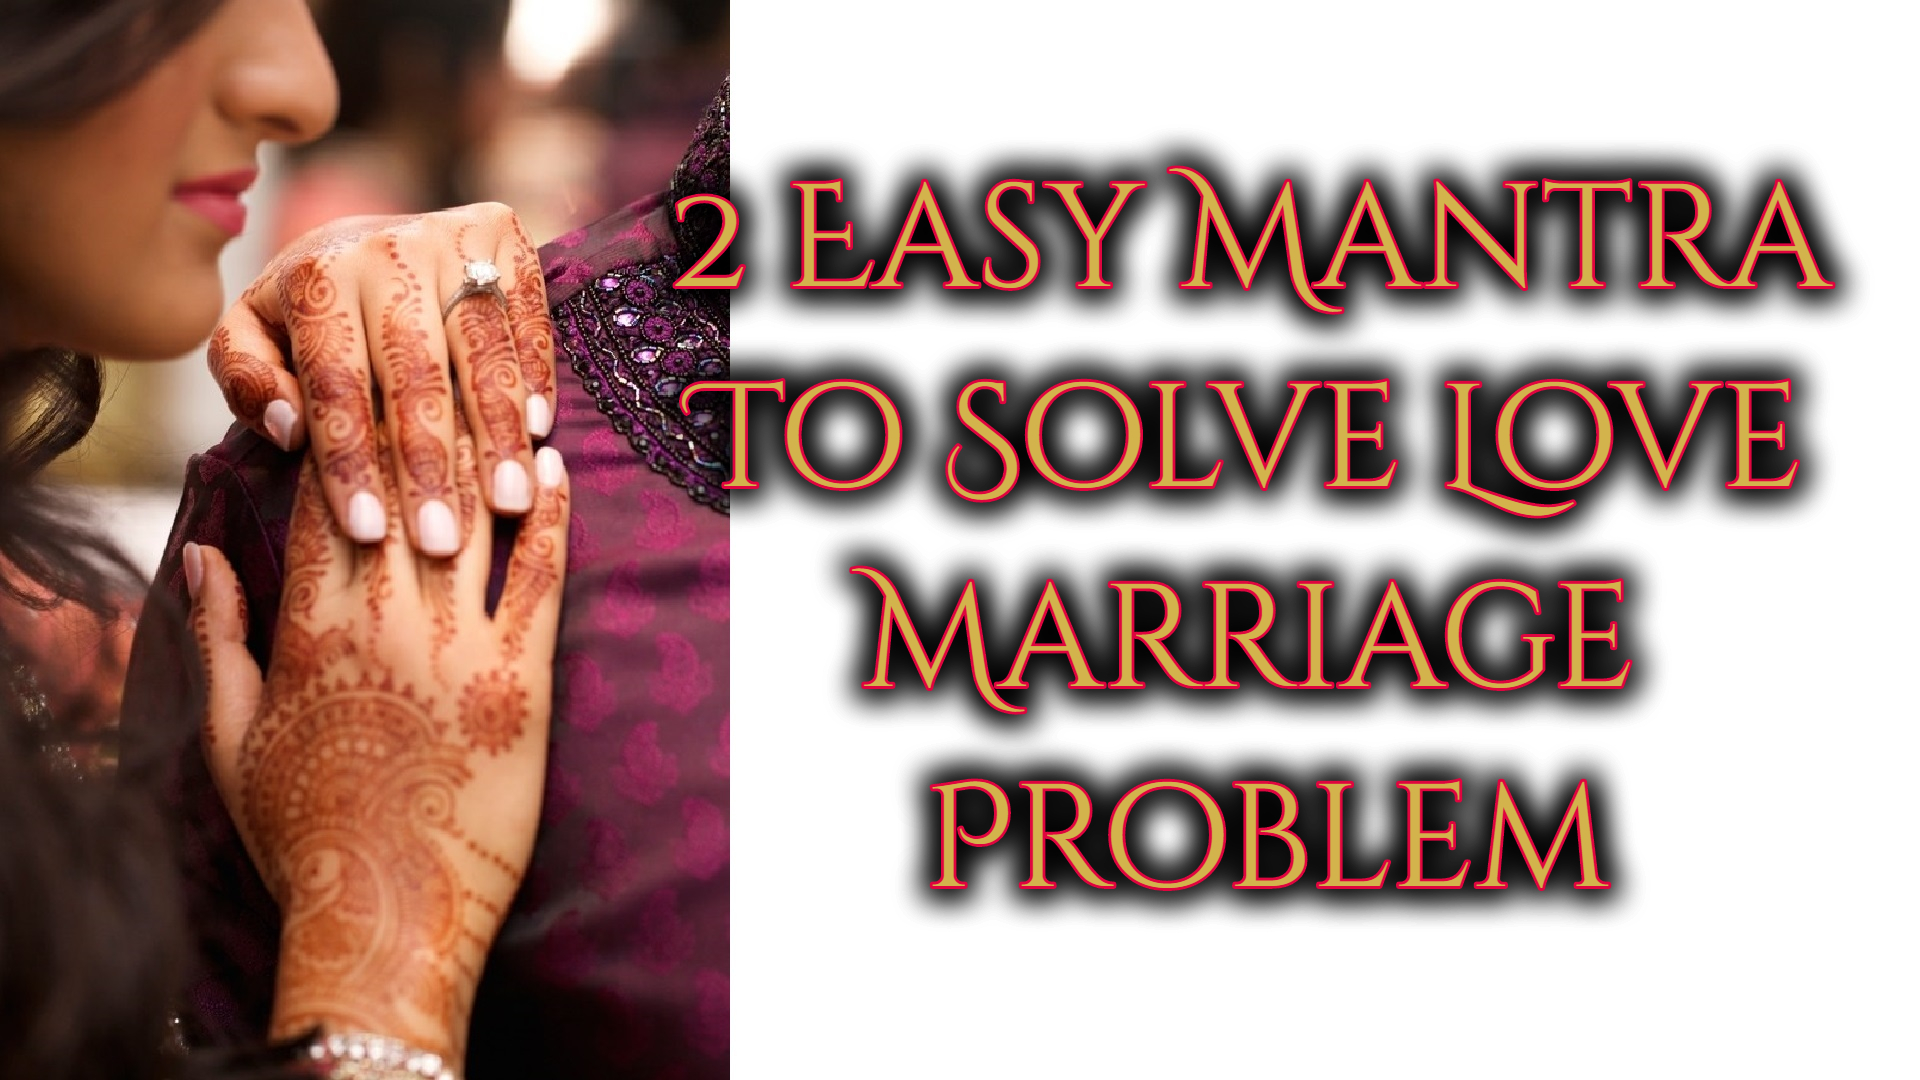 2 Easy Mantra To Solve Love Marriage Problem